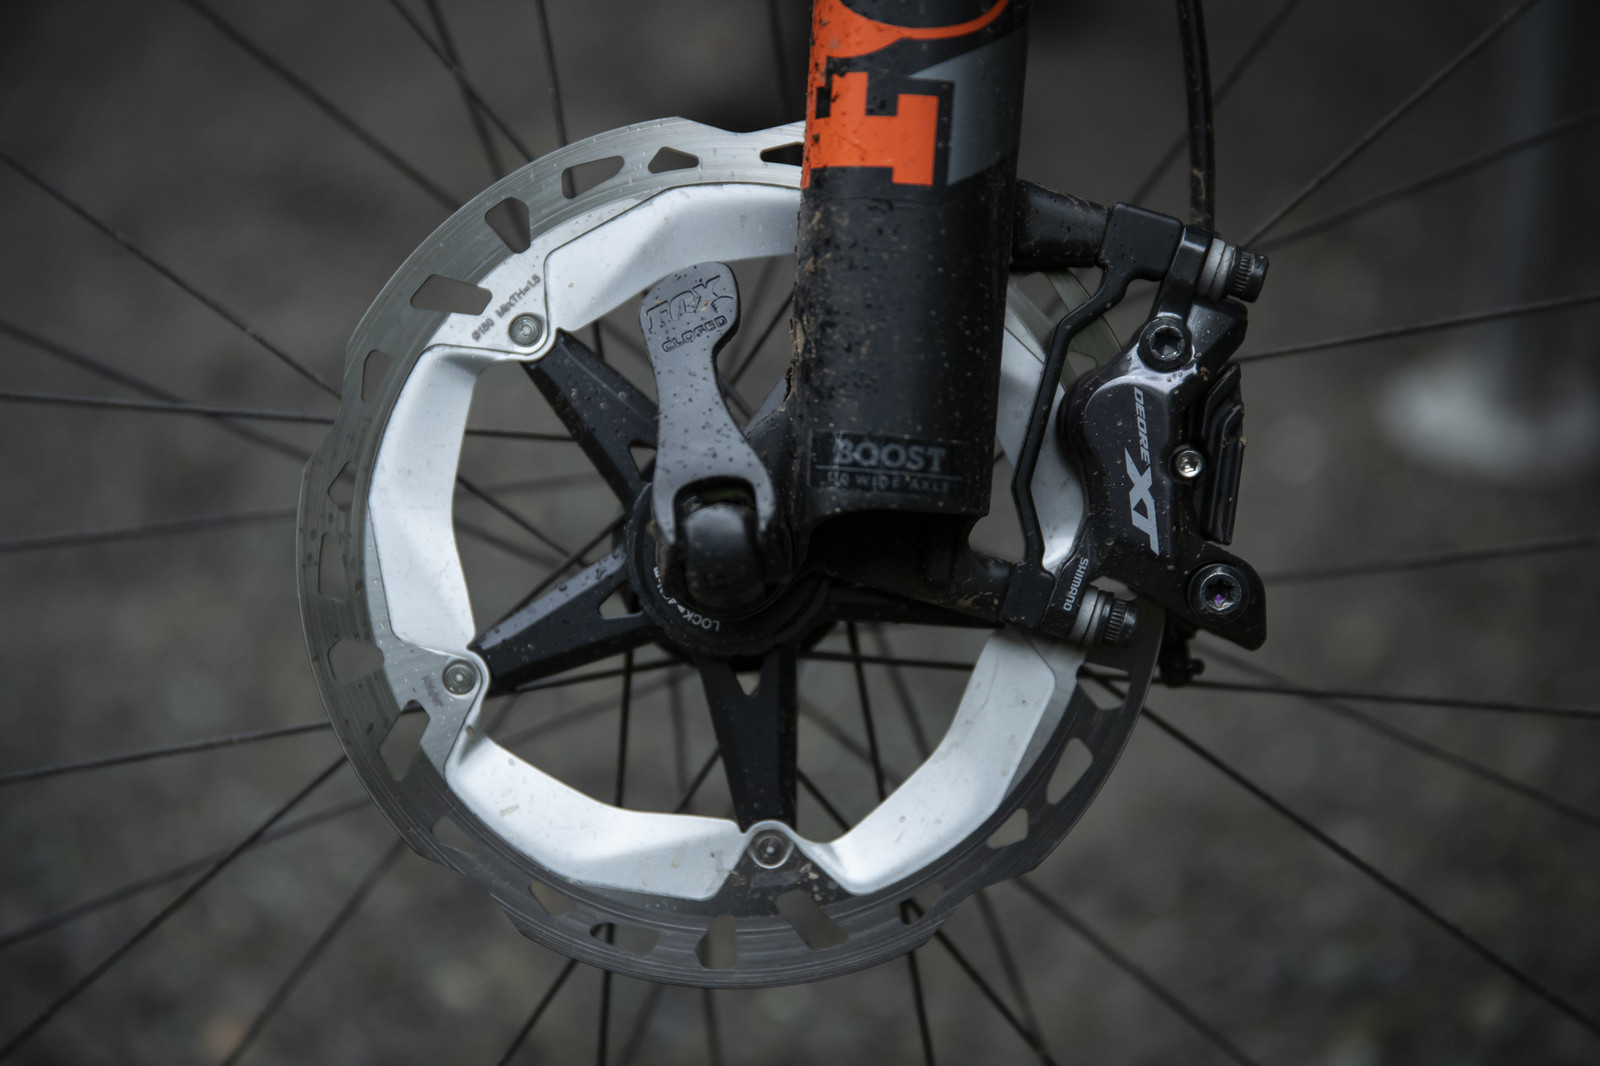 Discover the All-New Shimano SLX and XT 12-Speed Drivetrains, Brakes